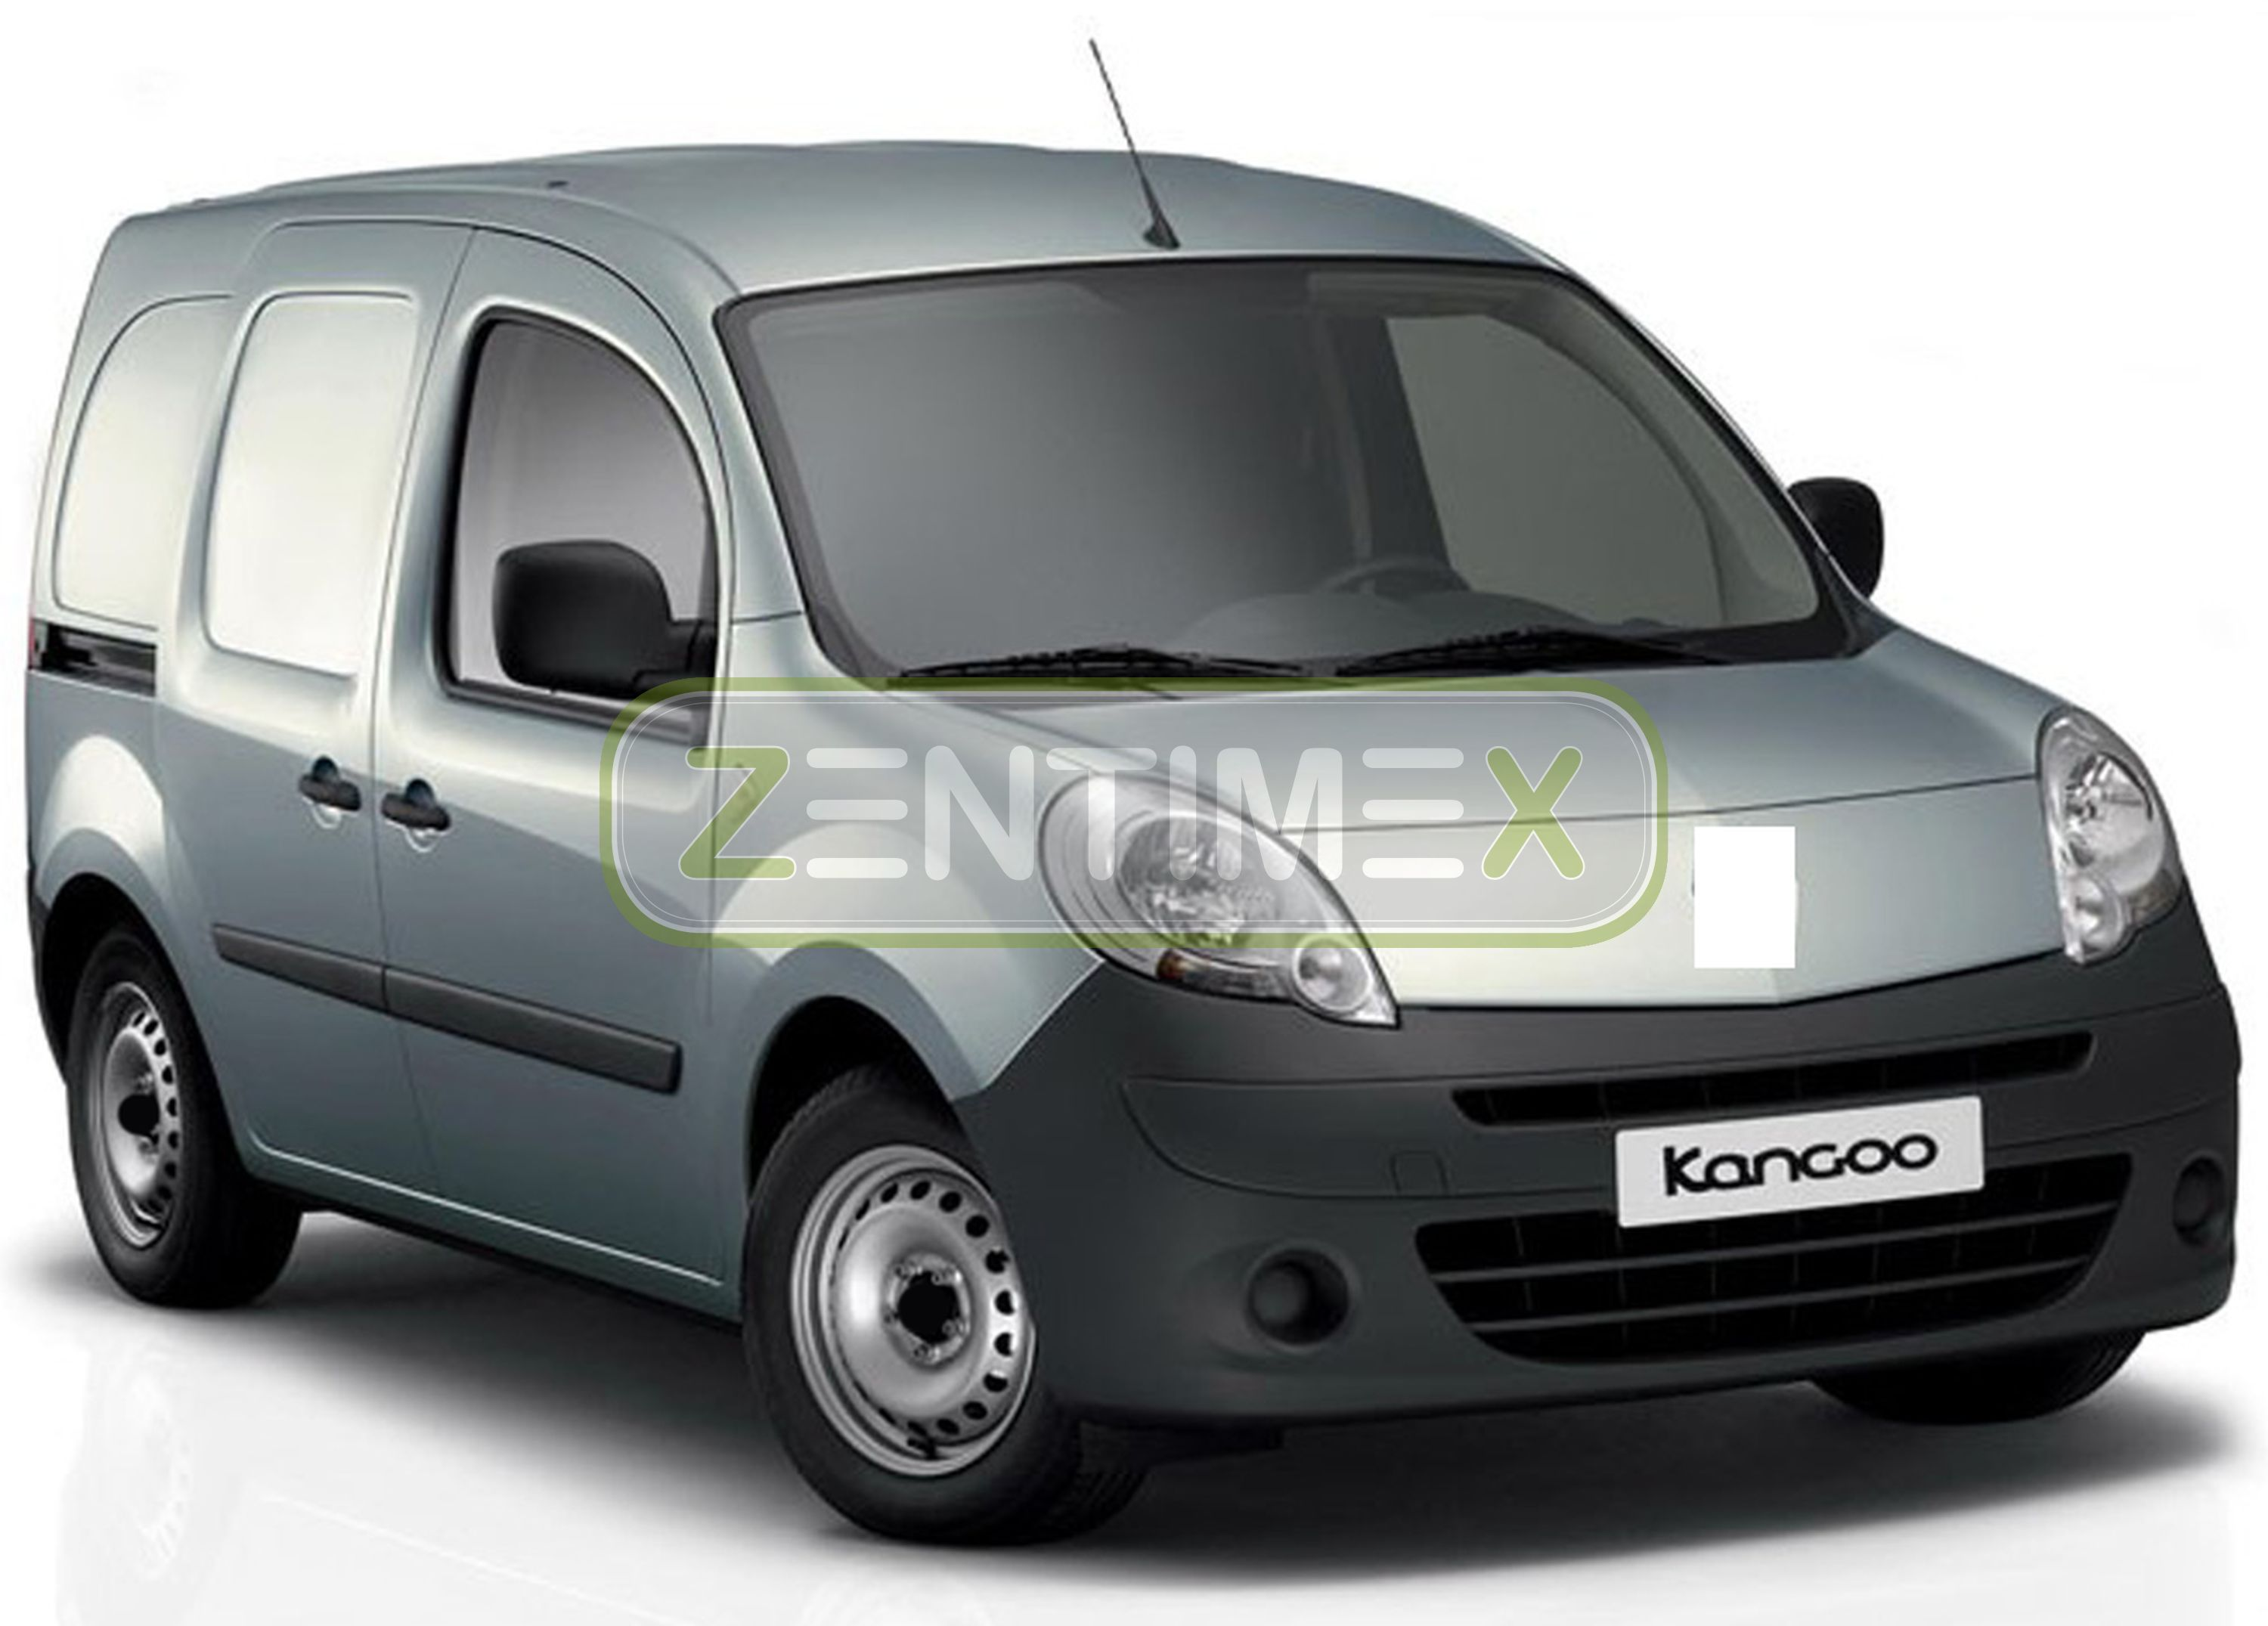 Diamanten-Design-Kofferraumwanne für Renault Kangoo Rapid Maxi Langversion //267